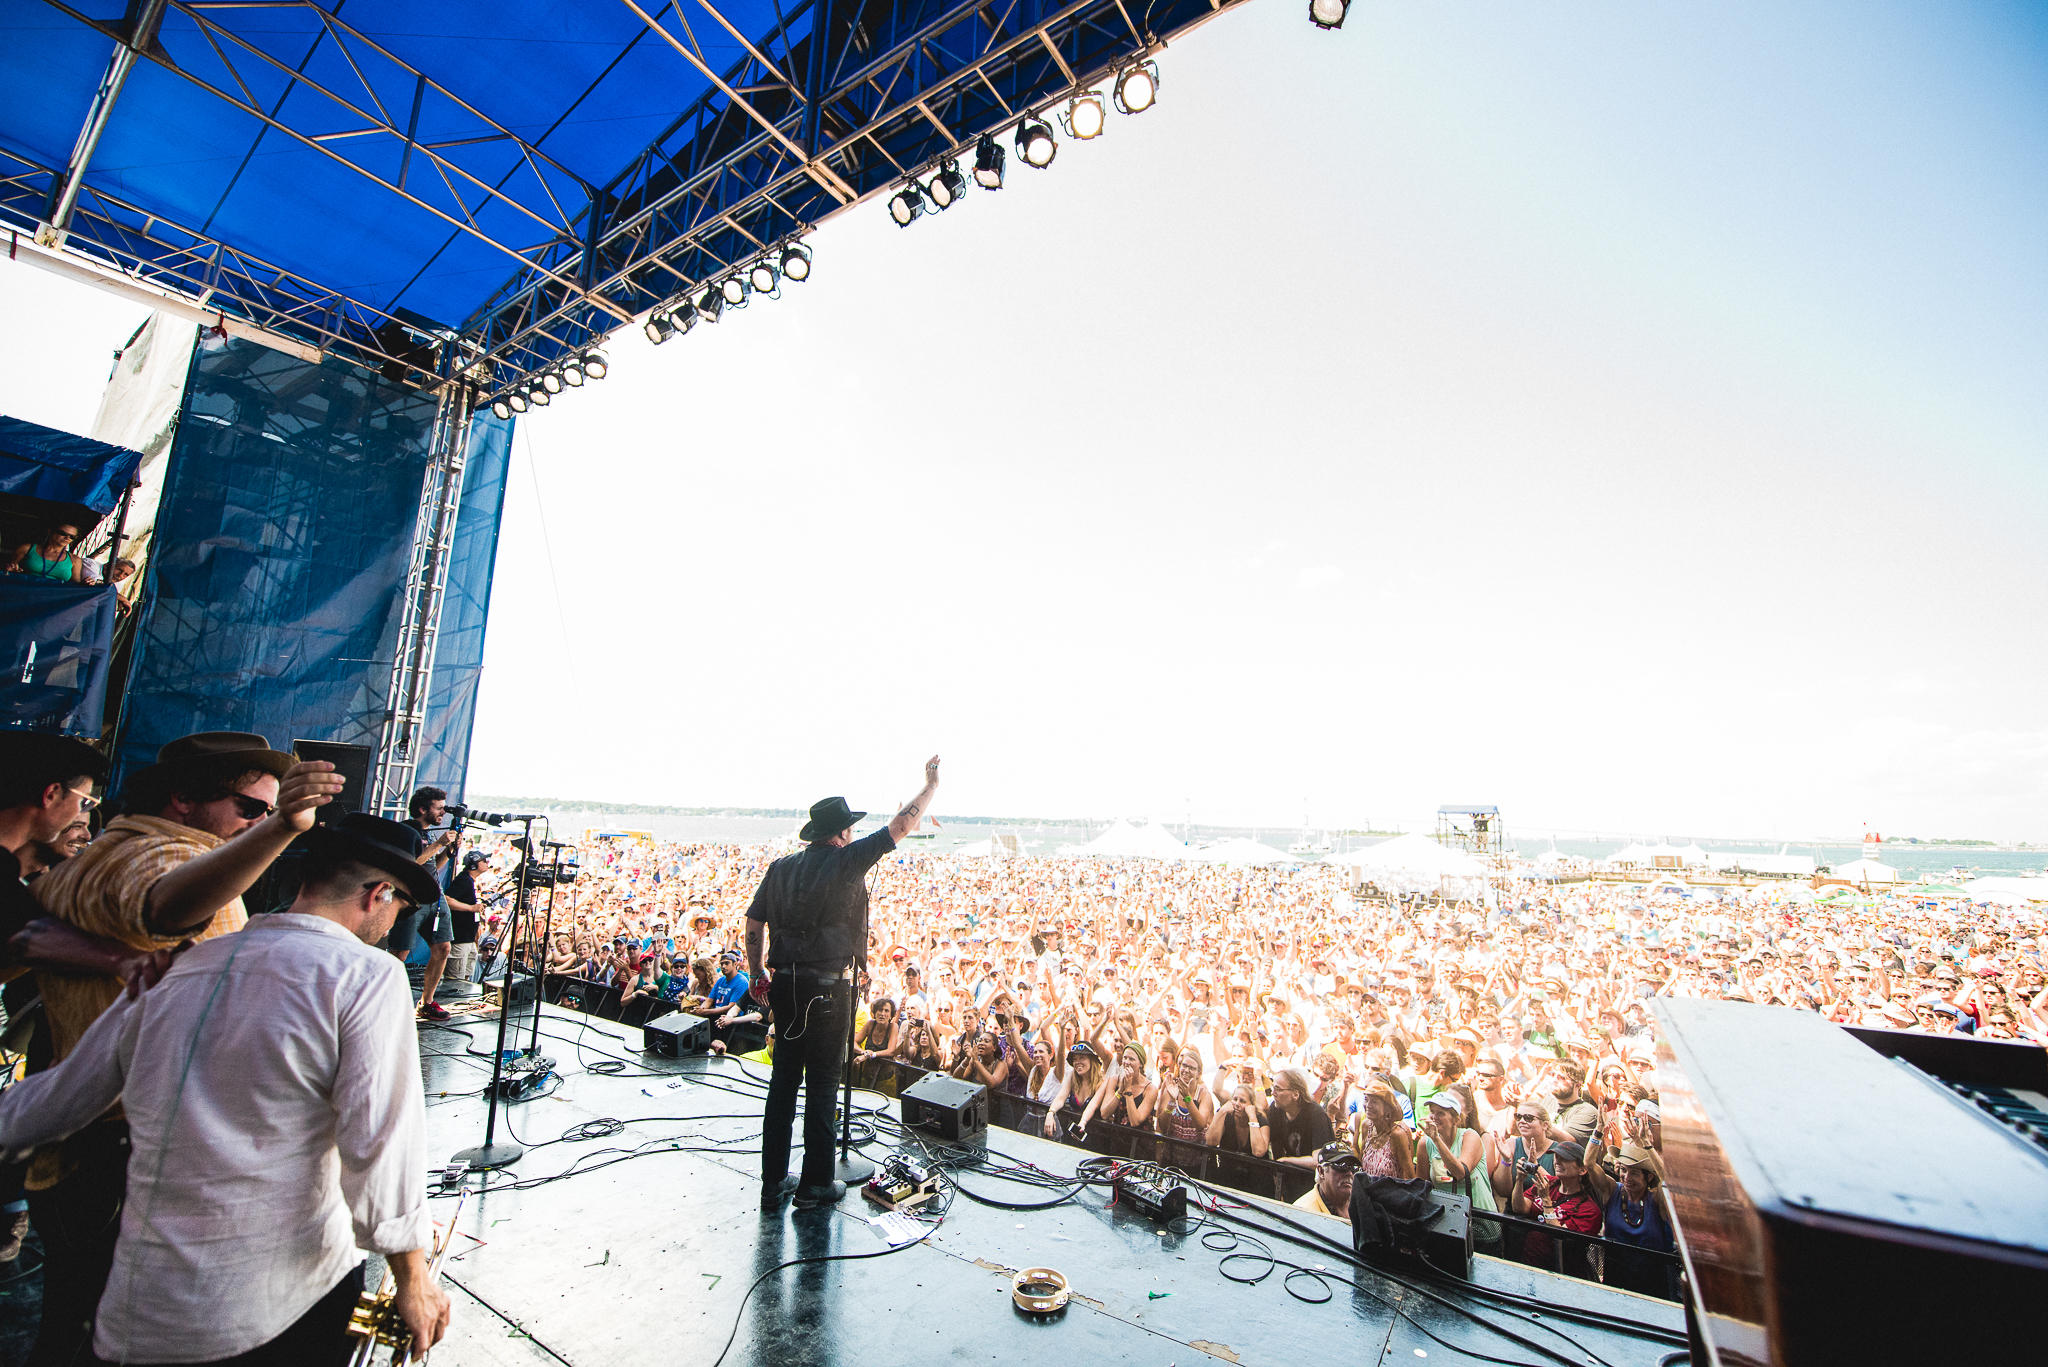 Newport Folk Festival kicks off 3 days of music